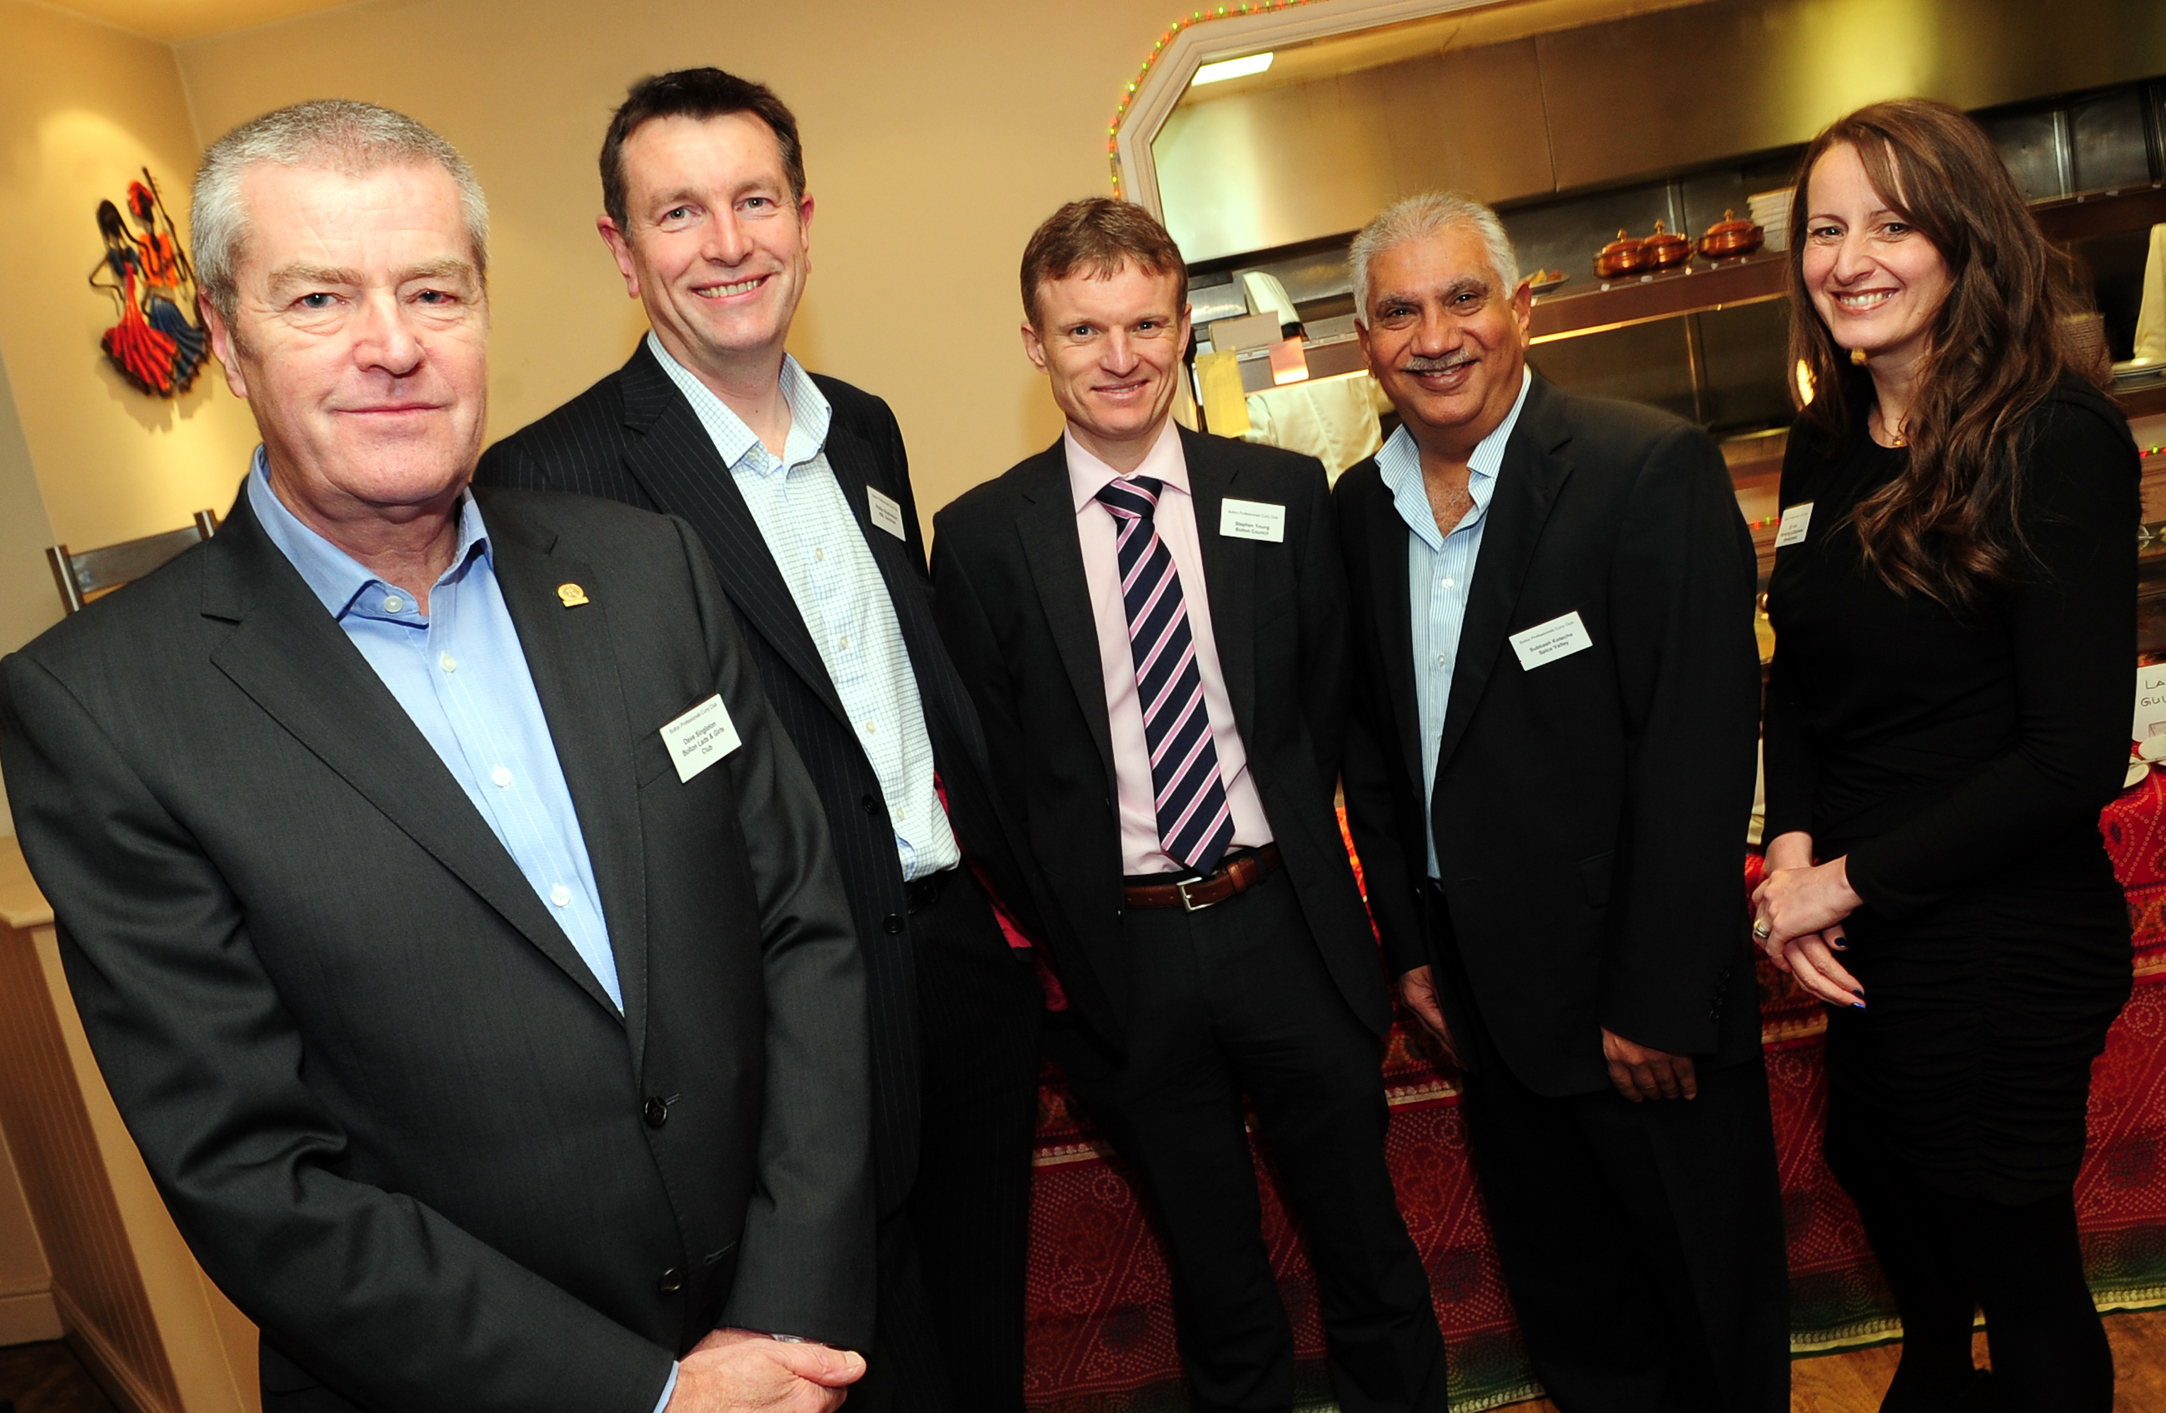 From left at the regular Curry Club are Dave Singleton, guest speaker and chair of Bolton Lads and Girls Club and The Bolton Vision Partnership, Phil Stephenson, KBL, Stephen Young, Bolton Council, Subhash Kotecha, Spice Valley and Gill Hart, Organisor. P